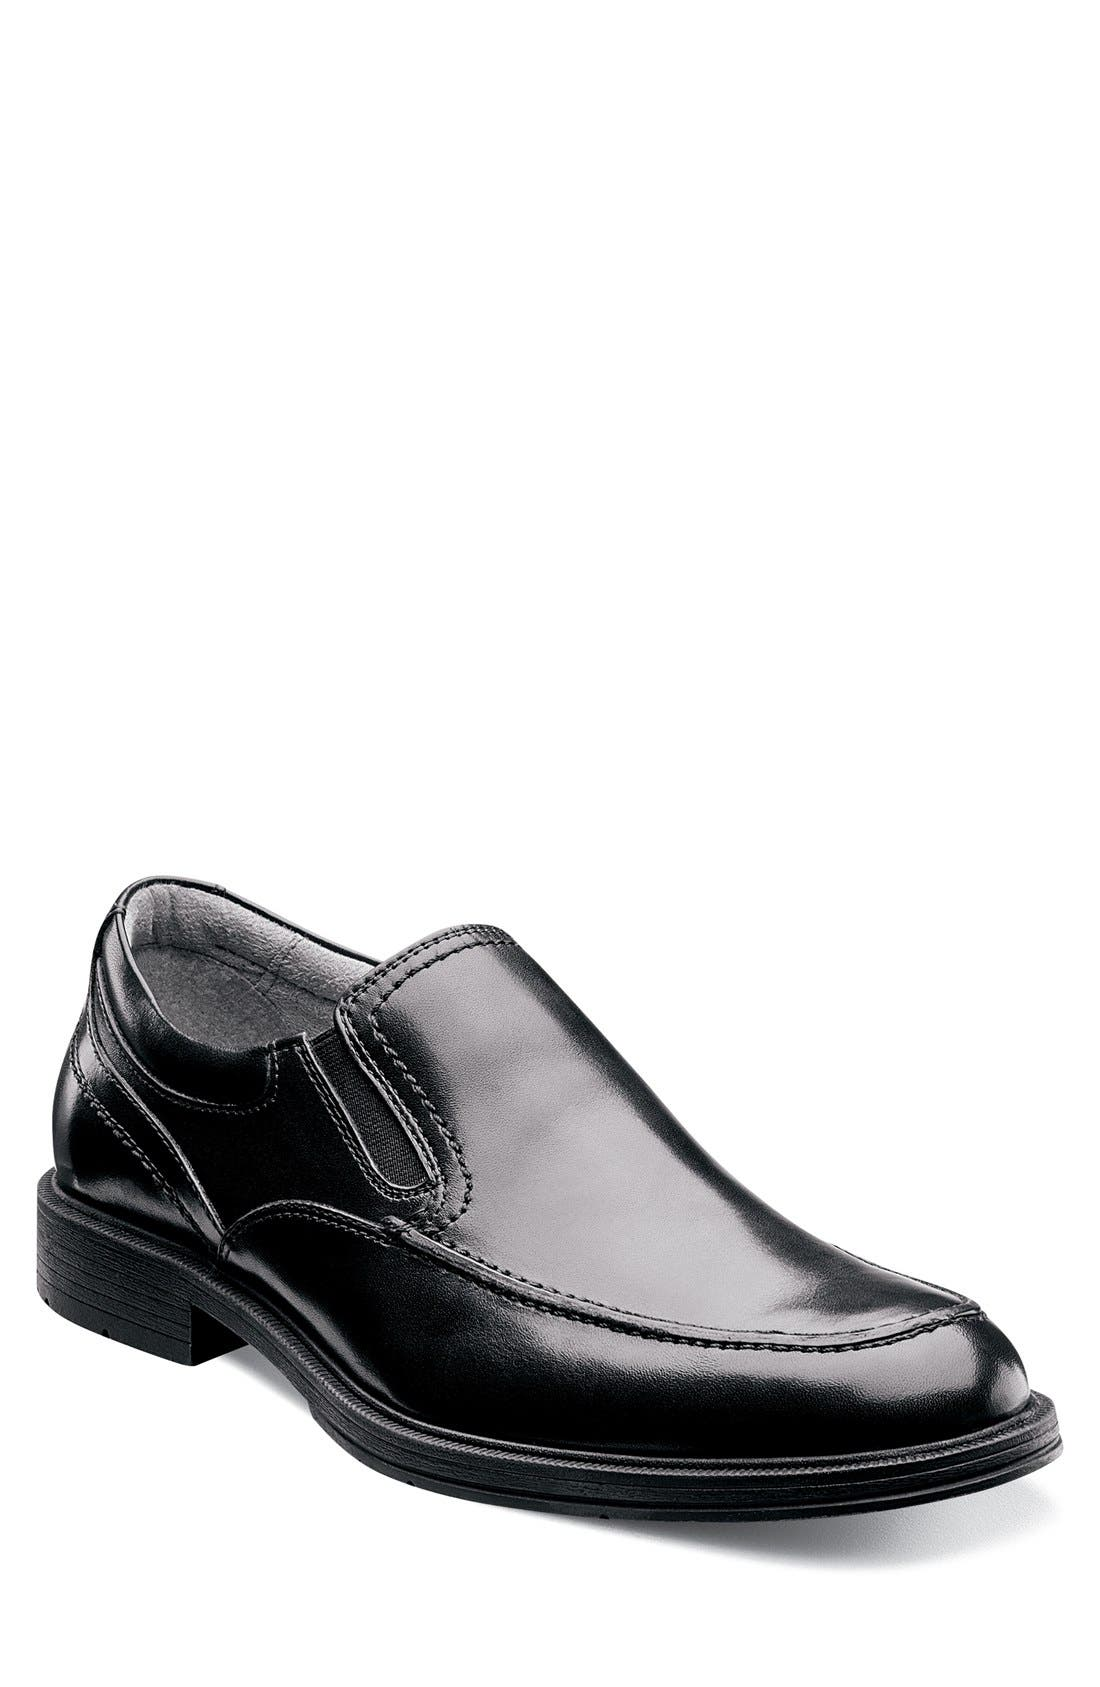 Florsheim 'Mogul' Venetian Loafer (Men)